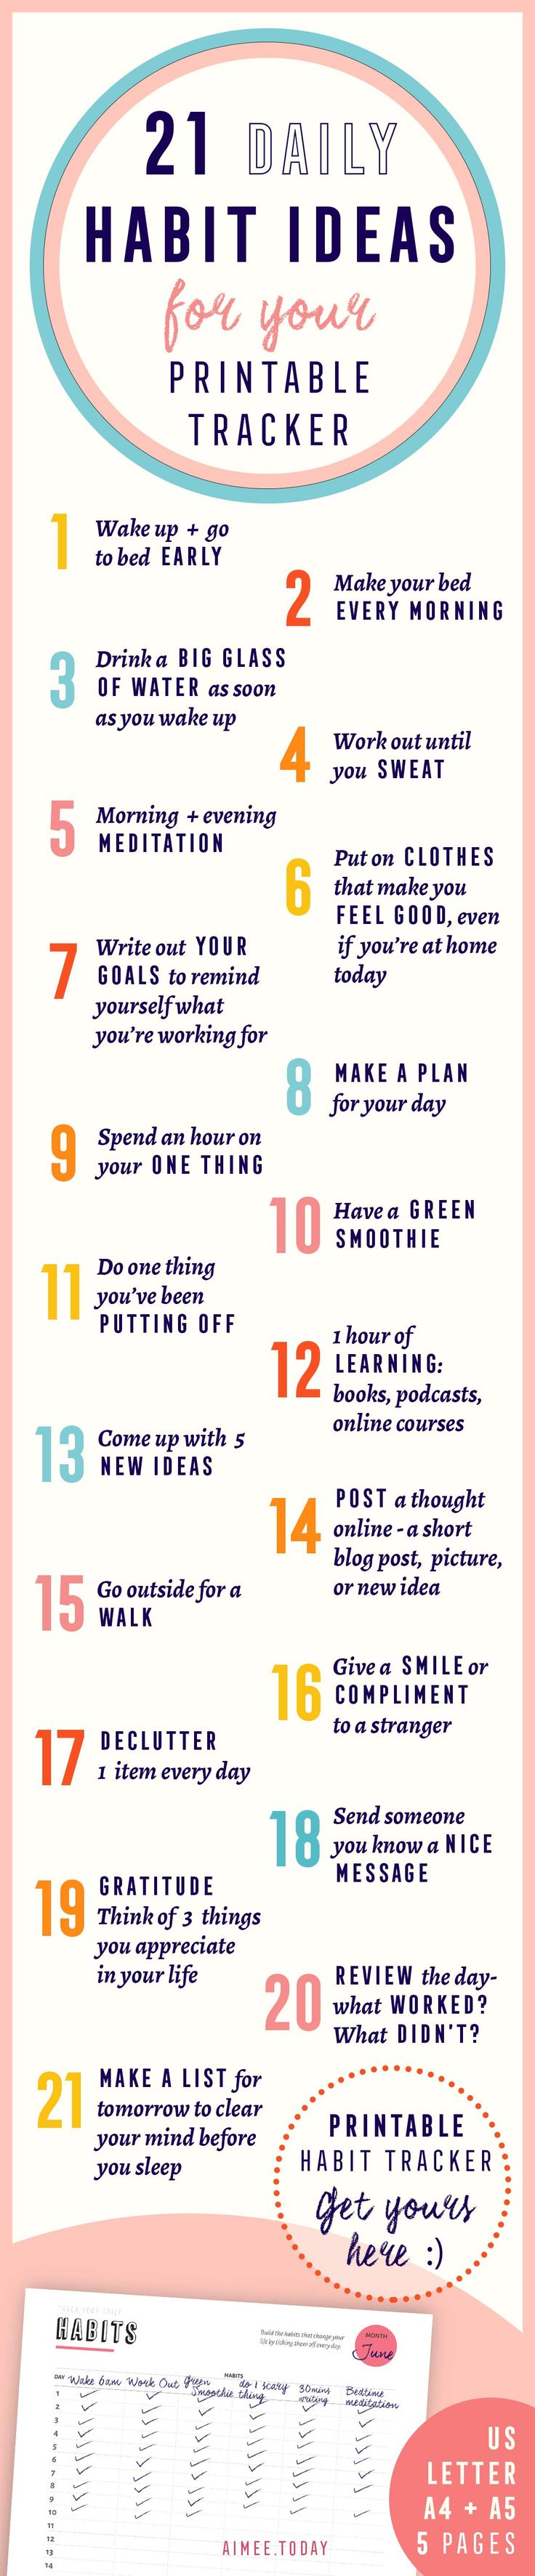 21 ideas for good  that you can build and track with your printable habit tracker. They'll make you happier, healthier, more organised and bring you closer to your goals. Have more fun bringing your dreams to life!